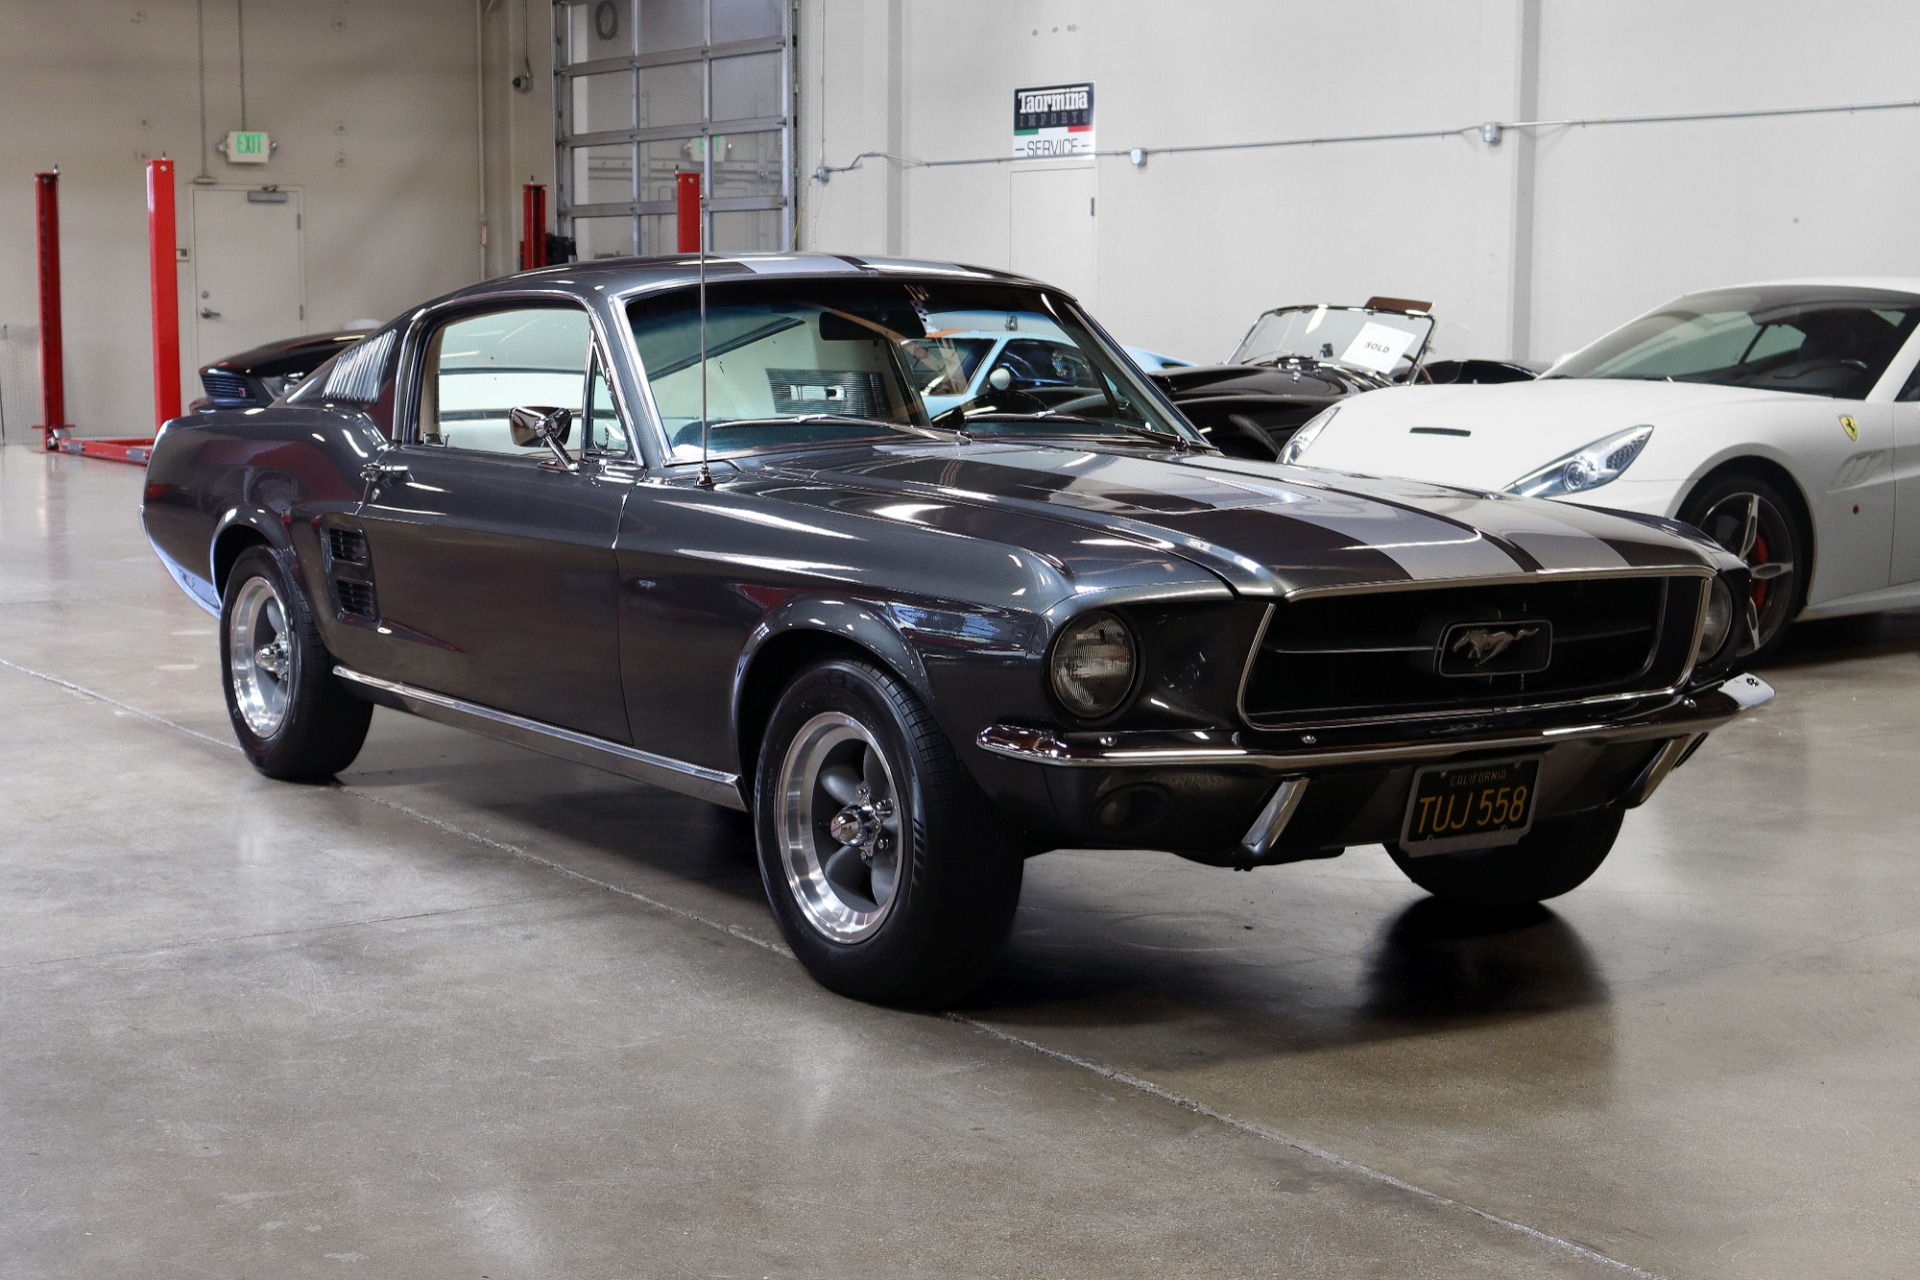 One of the most instantly recognizable movie cars of all time has been painstakingly restored and is going under the hammer one o. Used 1967 Ford Mustang Fastback For Sale 59 995 San Francisco Sports Cars Stock C21018